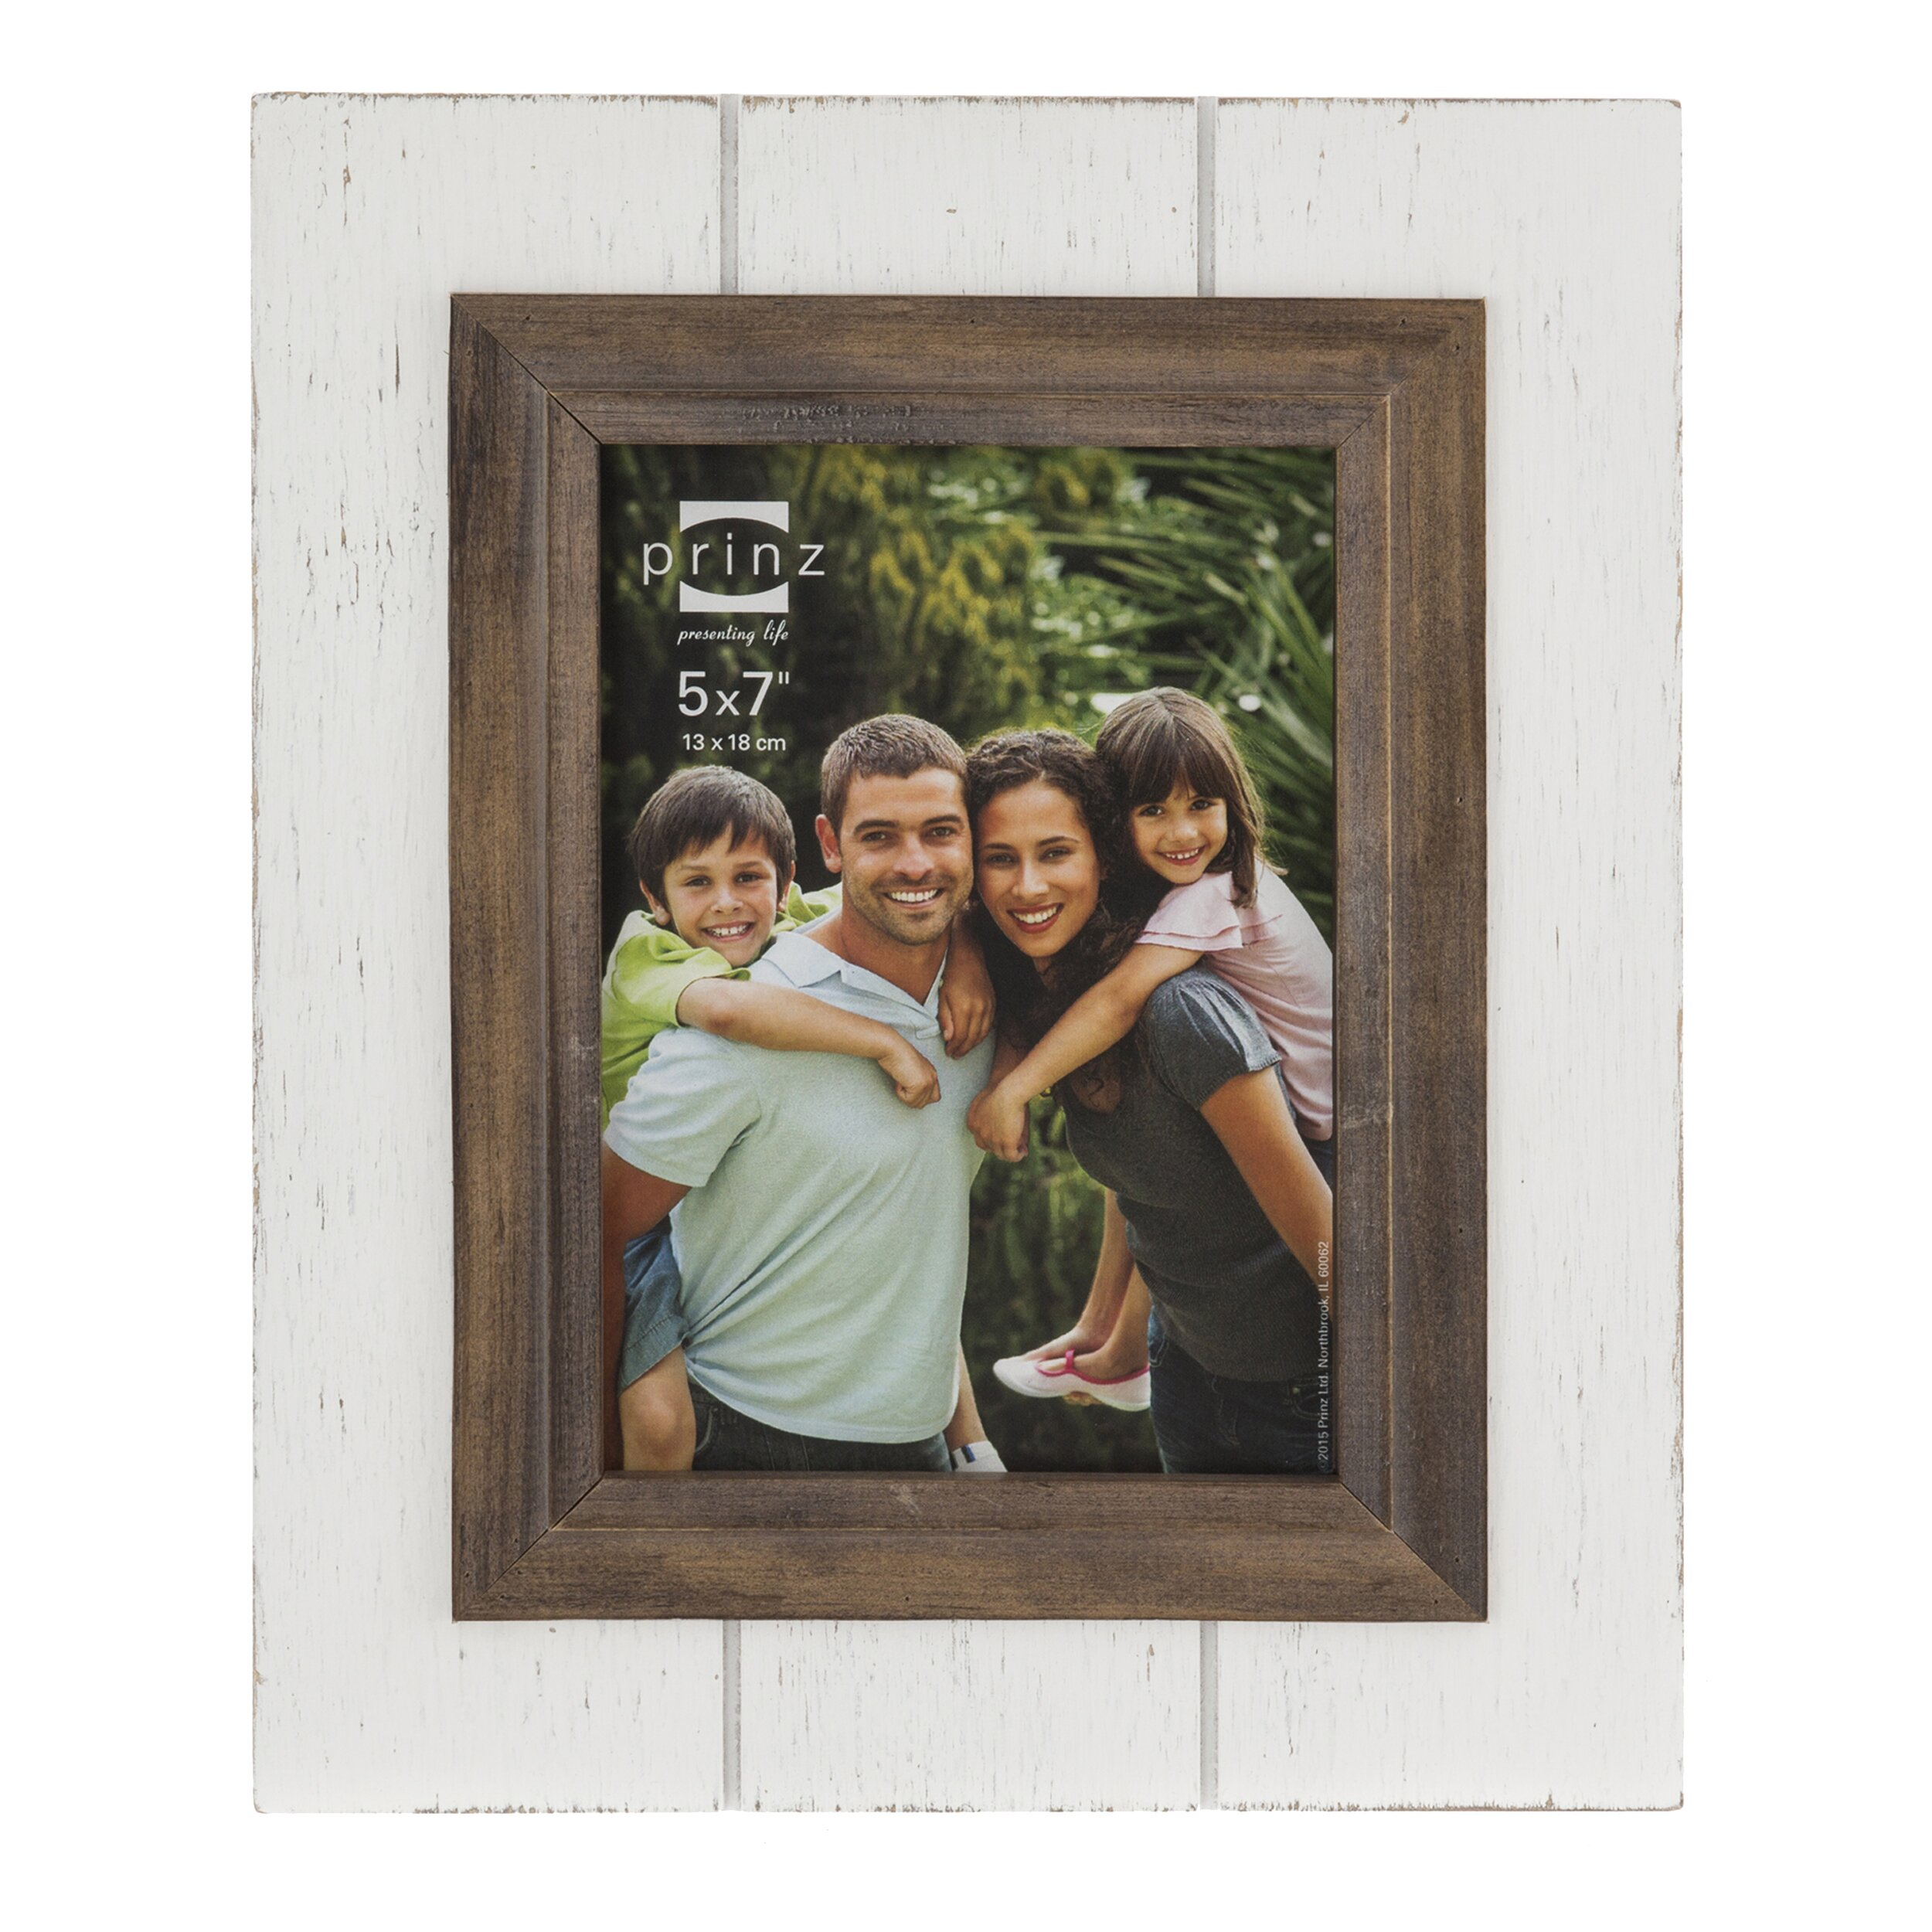 parker distressed plank picture frame